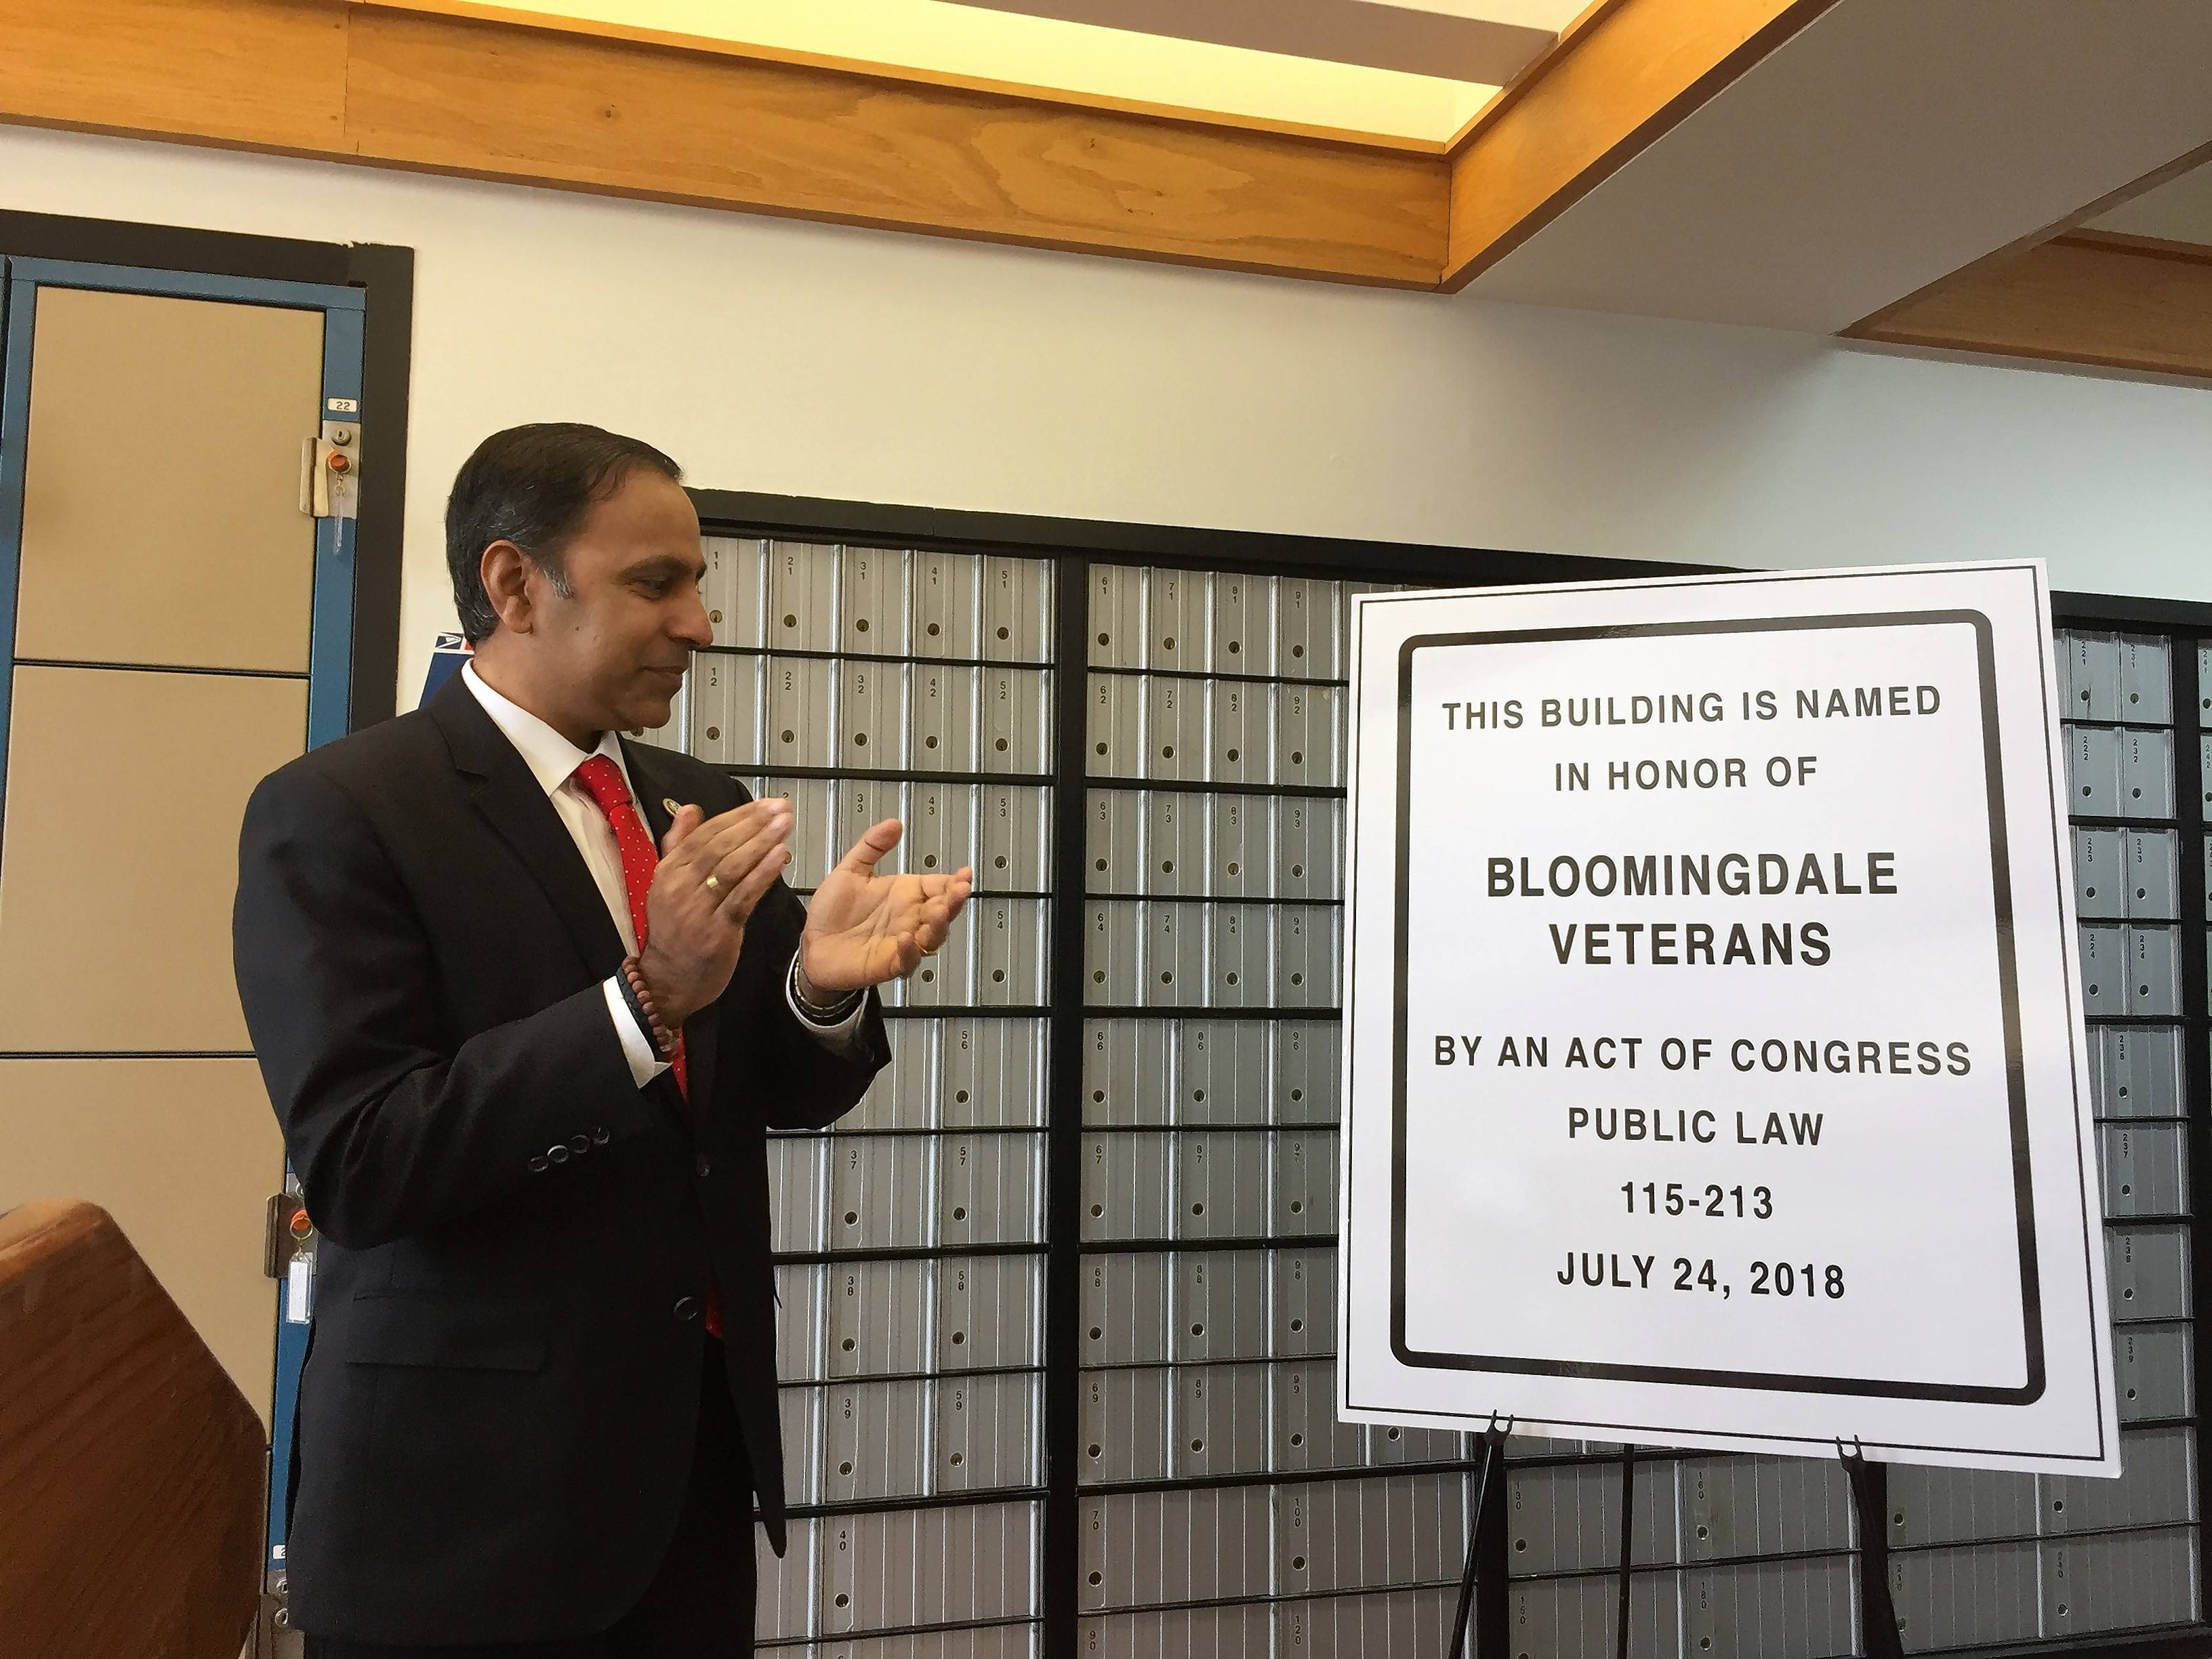 U.S. Rep. Raja Krishnamoorthi attended a Thursday ceremony to rename the post office in Bloomingdale. The facility along Schick Road is now called the Bloomingdale Veterans Memorial Post Office Building.